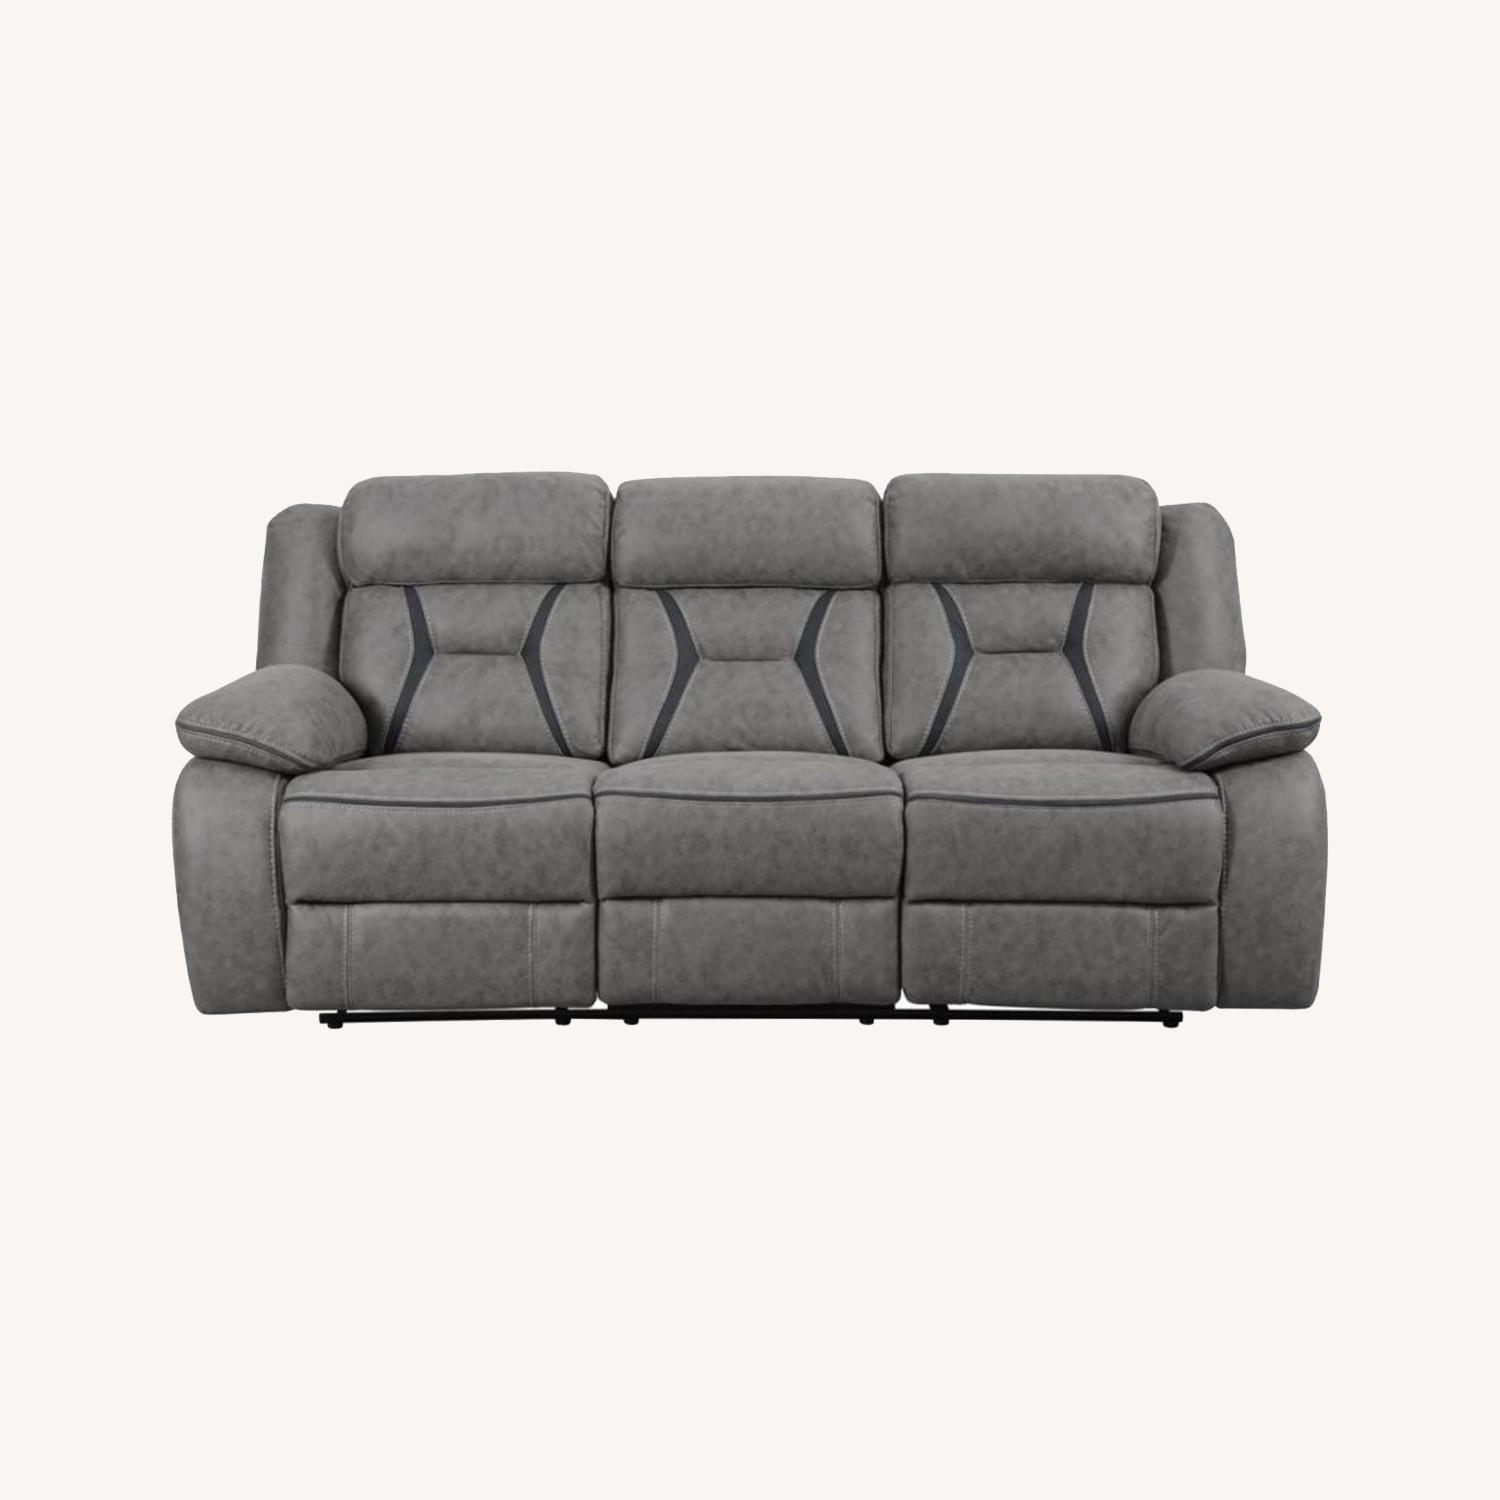 Motion Sofa In Grey Suede W/ Wall Hugger Mechanism - image-6